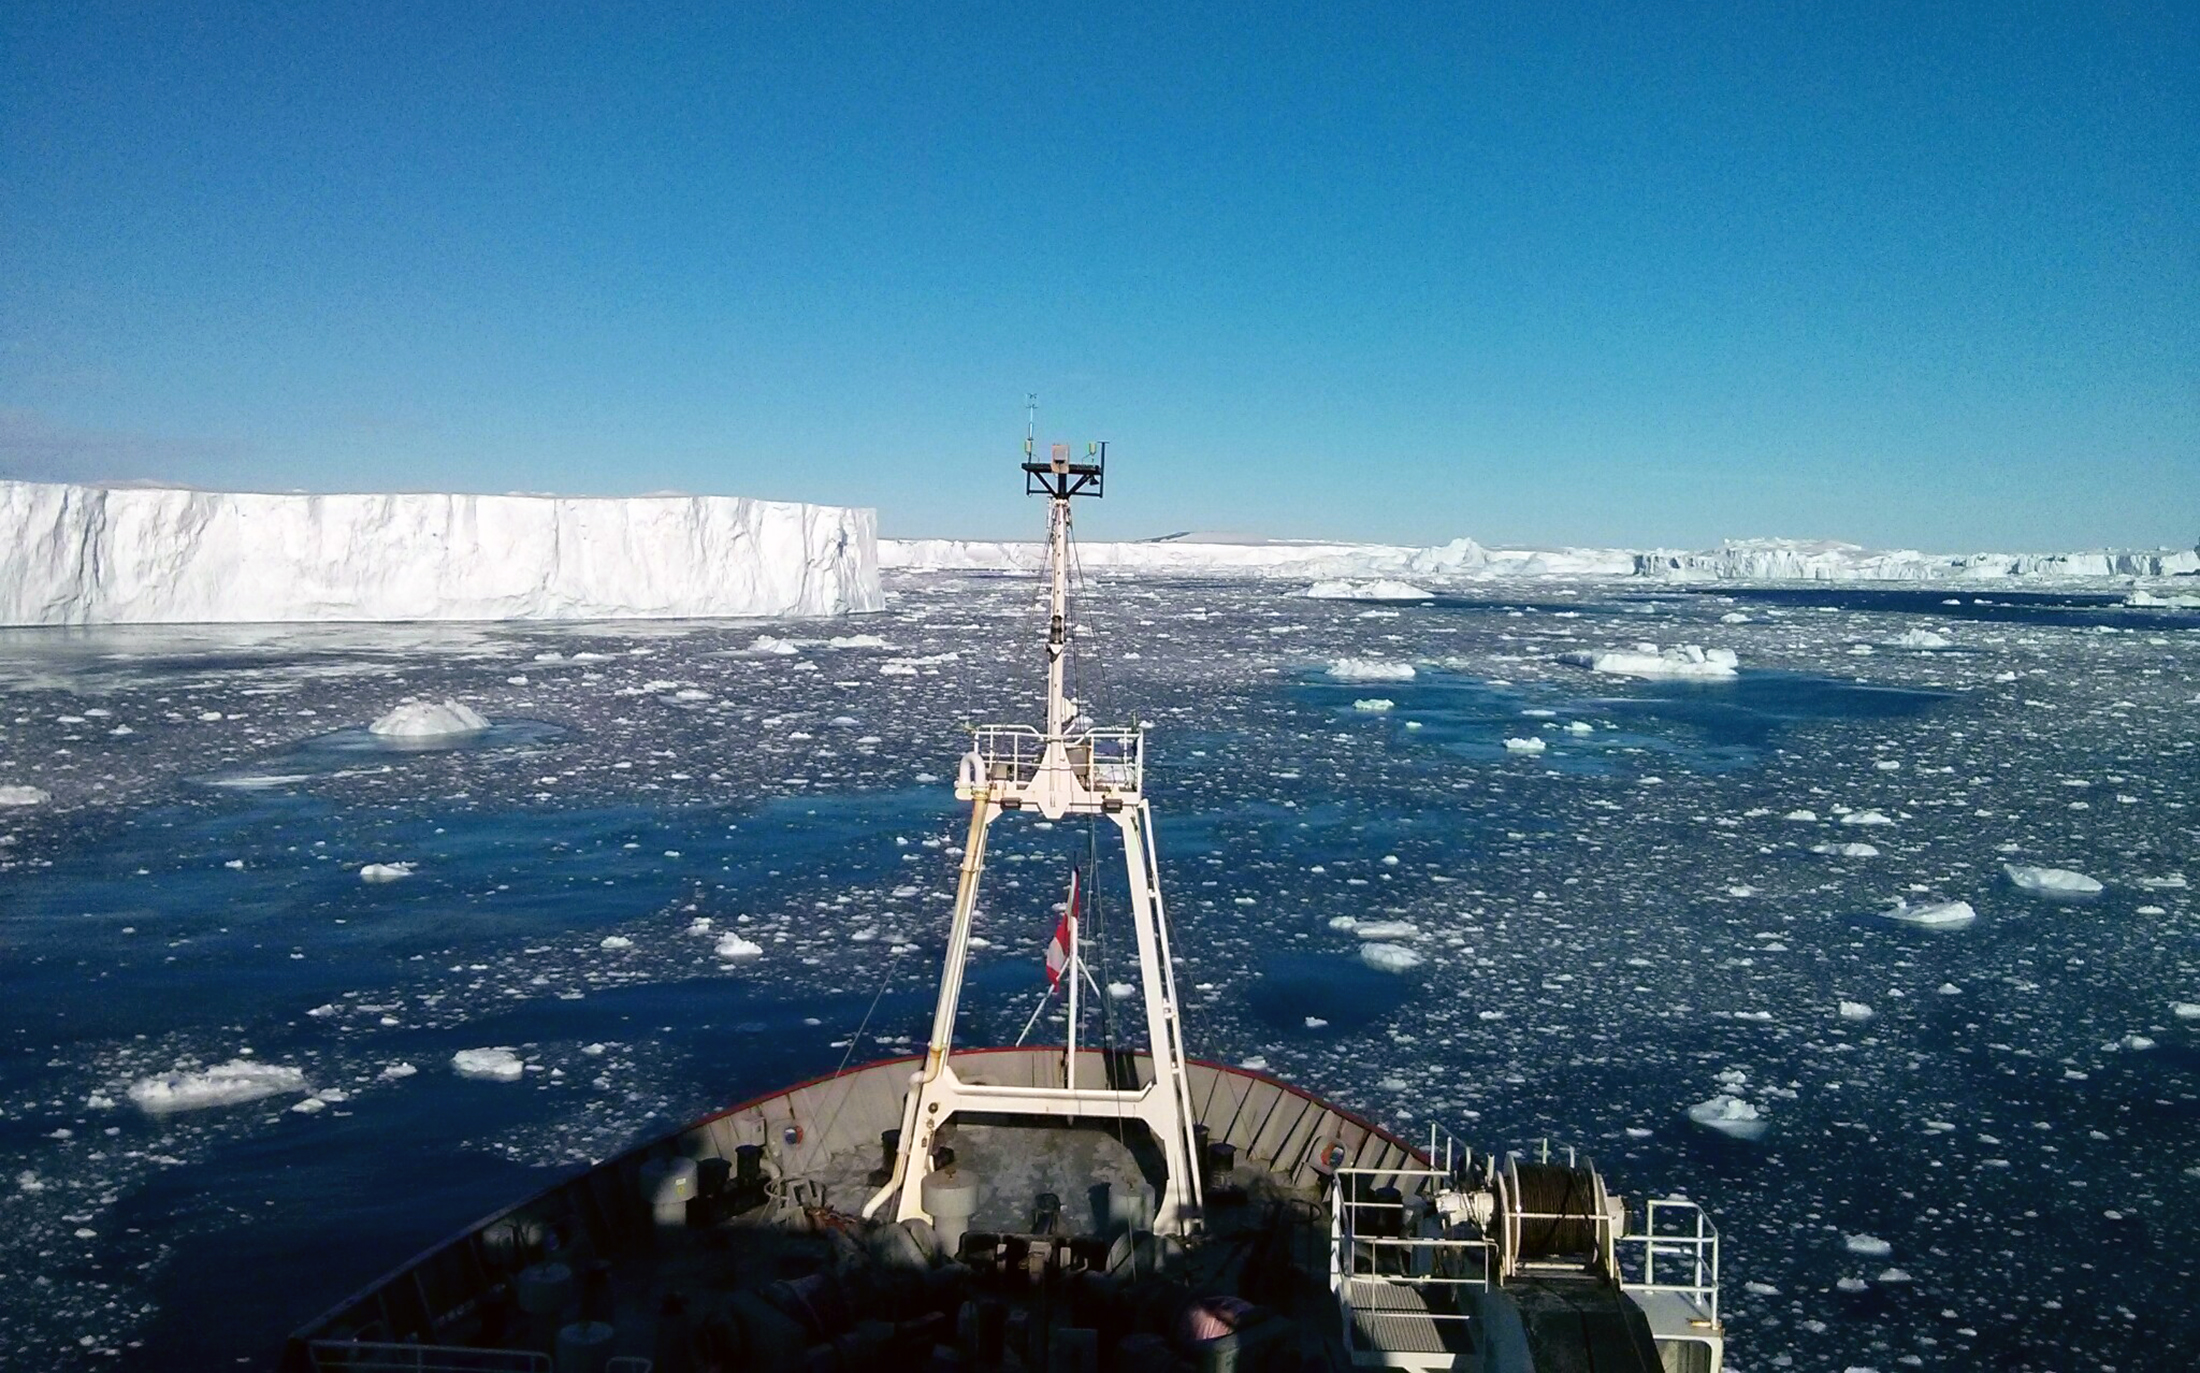 This view is from the bow of the icebreaker the RRS James Clark Ross on a 2014 scientific expedition, during which University of Rhode Island researcher and five other scientists discovered an active volcanic heat source beneath the Pine Island Glacier in Antarctica. (Photo courtesy of Brice Loose)